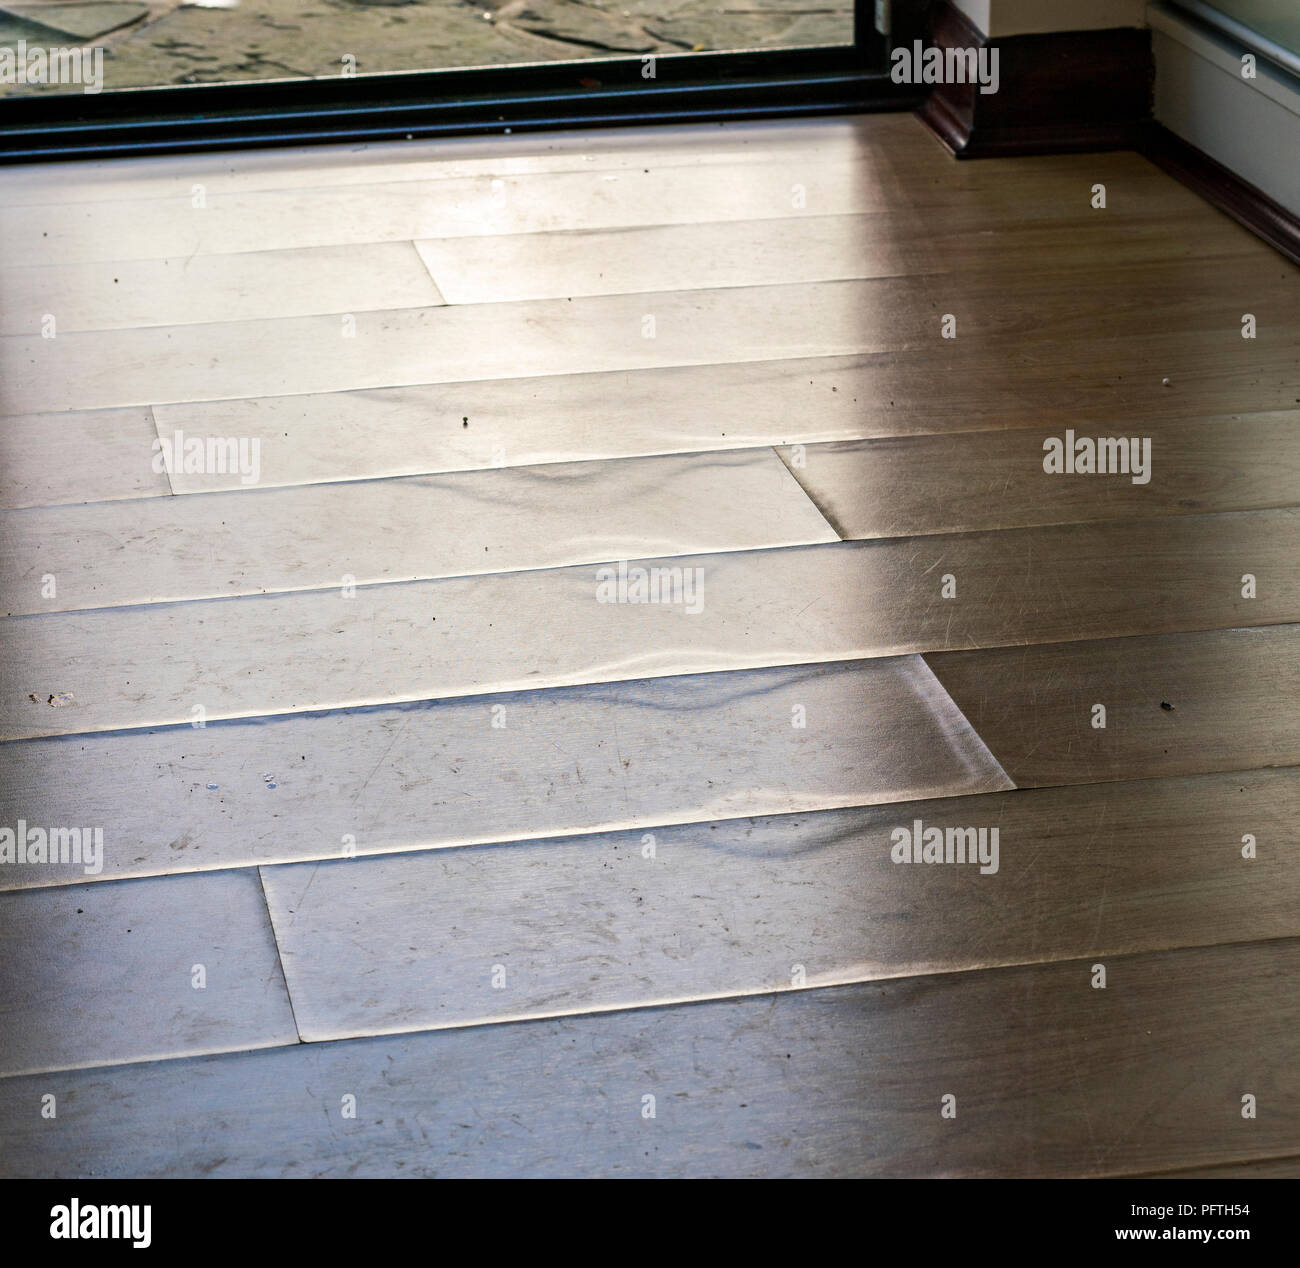 Laminate flooring swollen and delaminated at the edges after prolonged contact with water after a pipe burst. - Stock Image